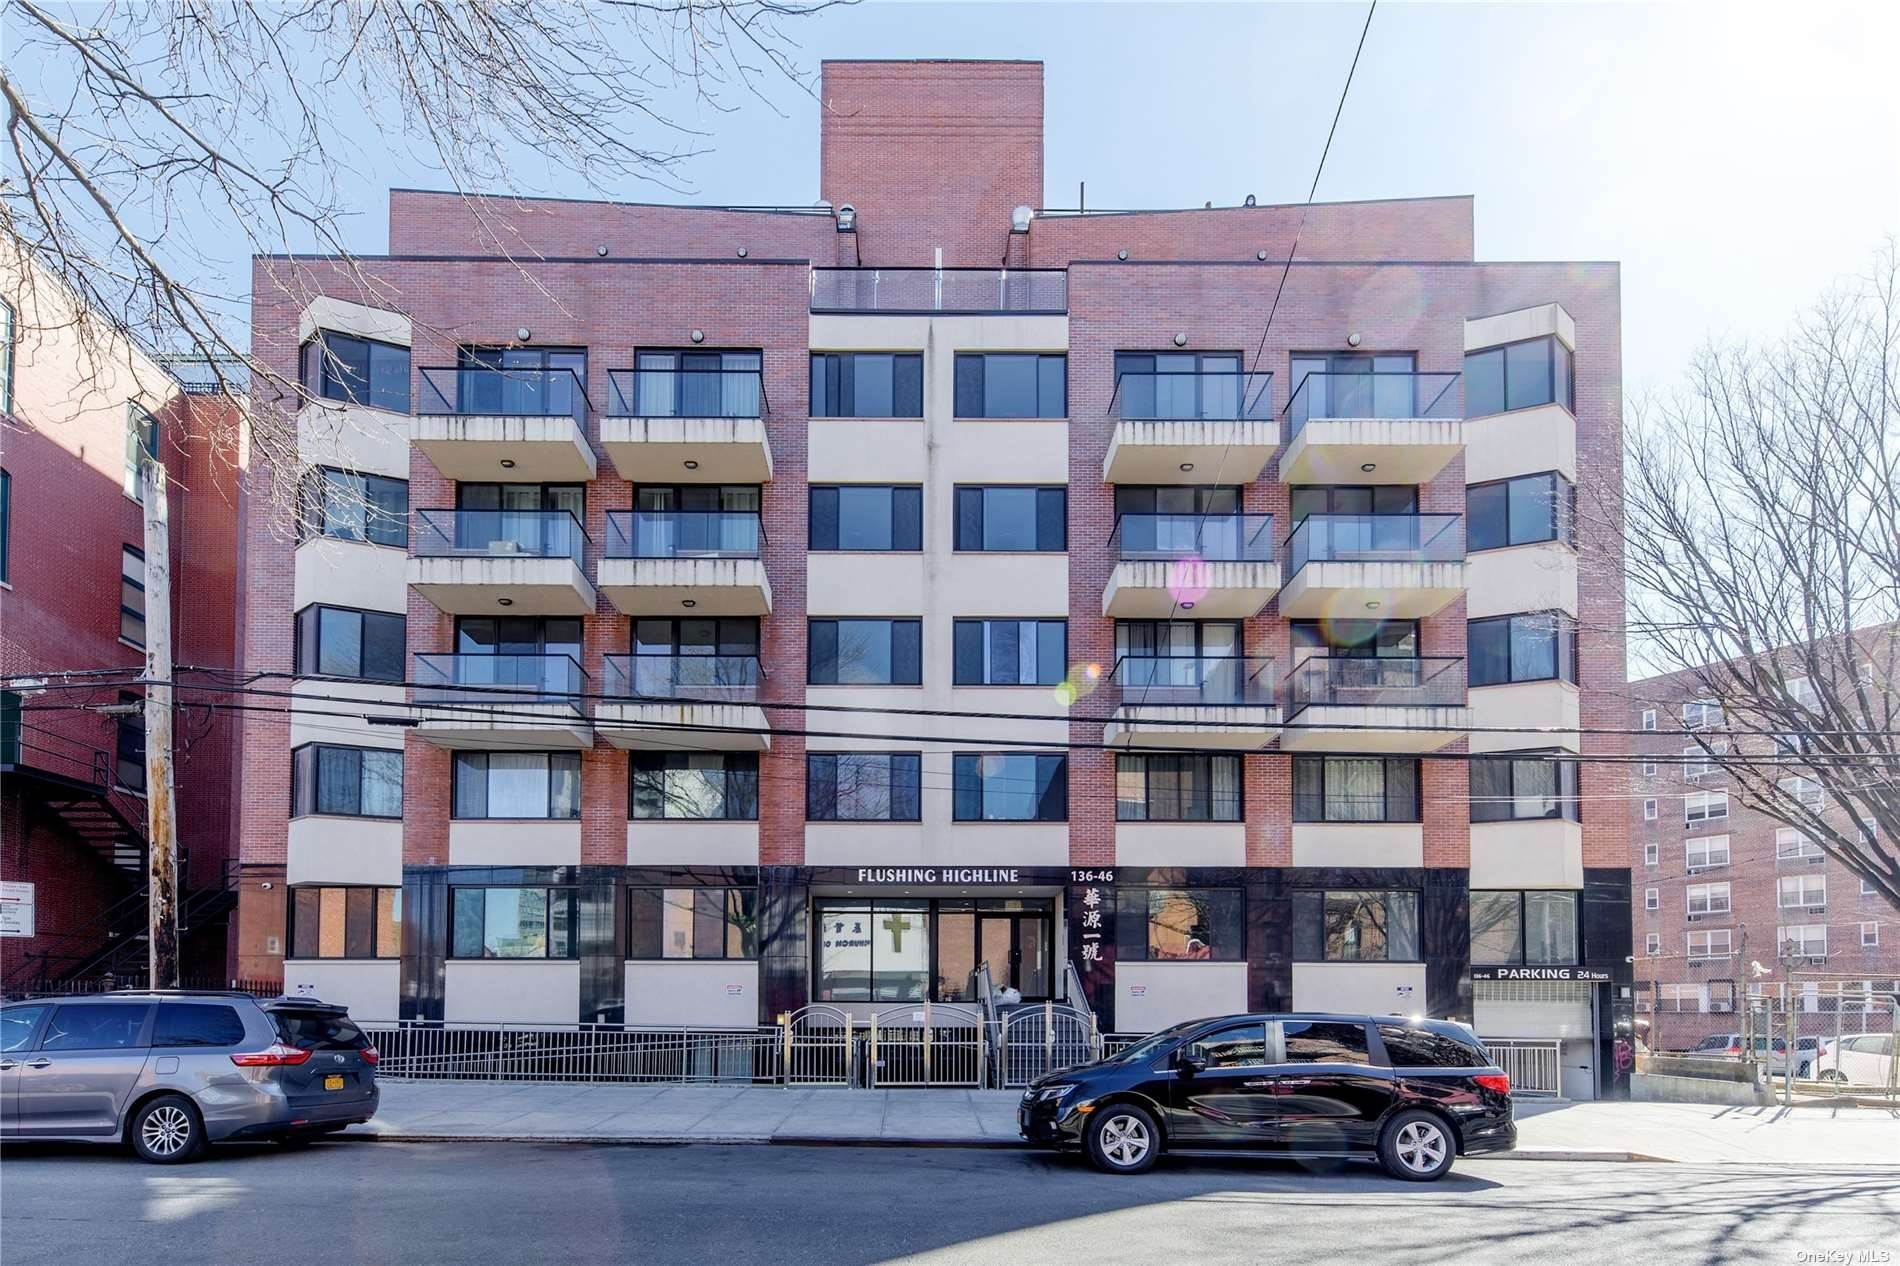 Business Opportunity for Sale at 136-46 41 Avenue # C1A Flushing, New York 11355 United States